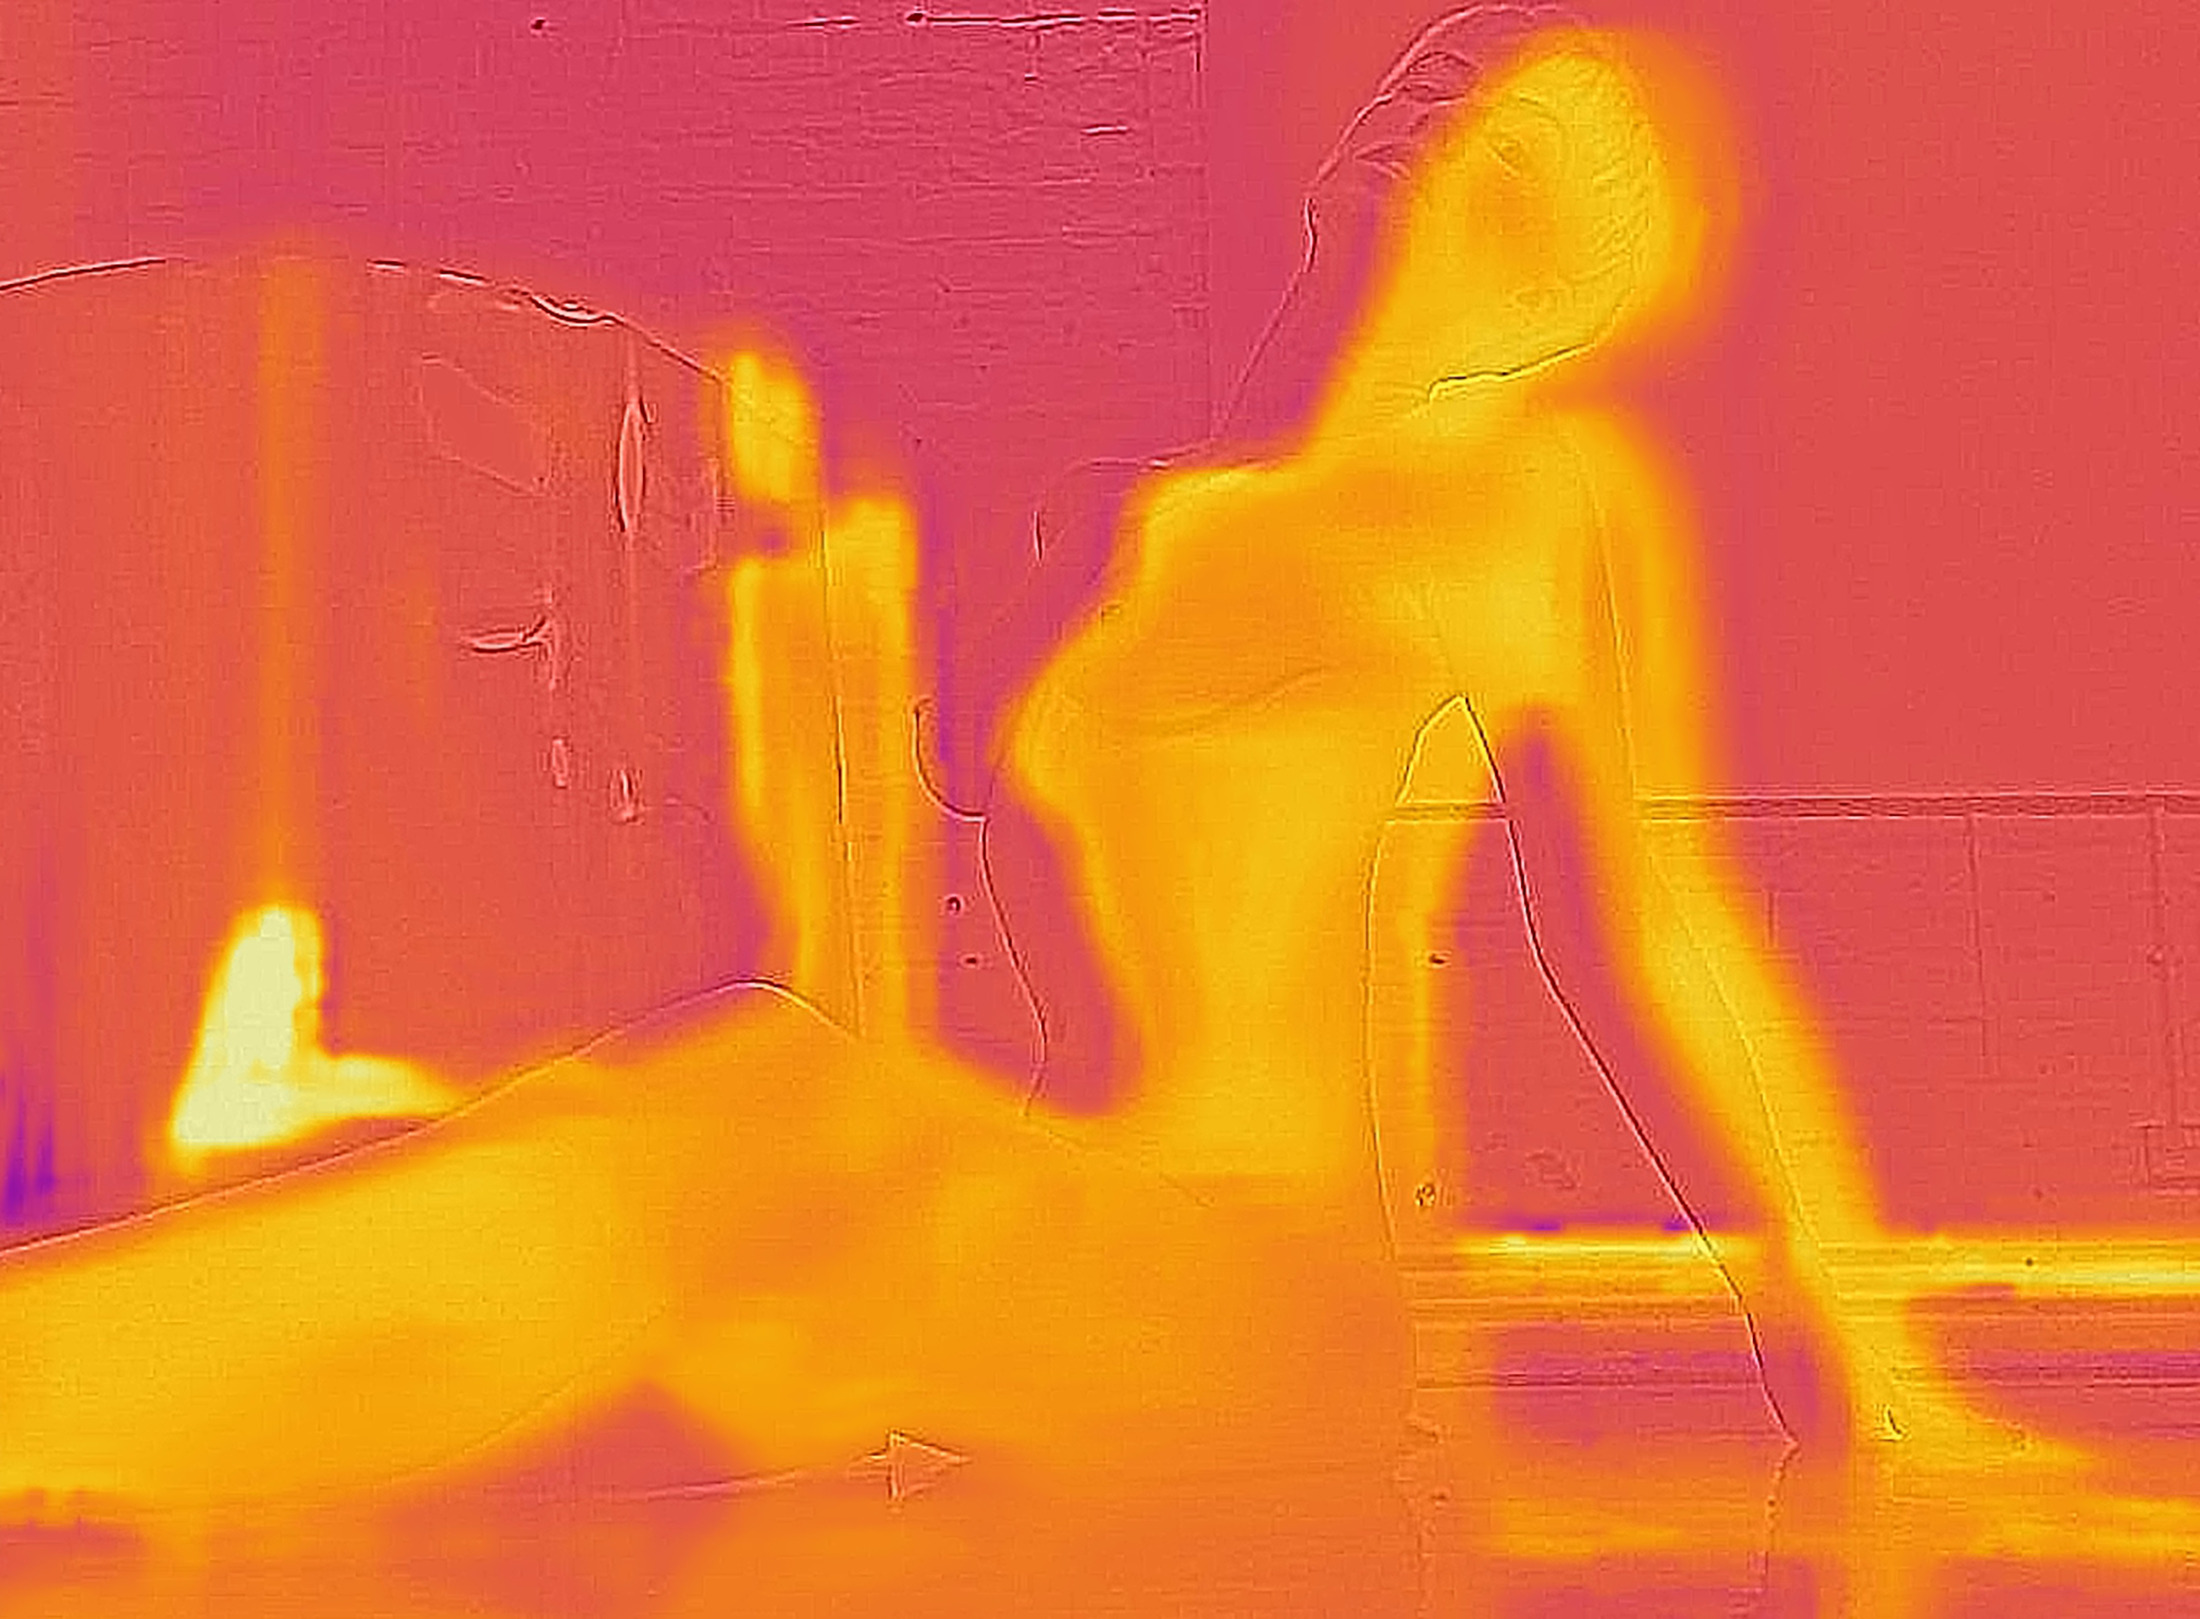 A thermal image showing a dark purple area, which is a studio floor and the shape of a person in orange/yellow signifying their body heat. They are laying on their back on the ground and then roll to the left of the image onto their front. Where they were lying previously there is a yellow shape of a person left on the purple ground, showing the heat their body have left.